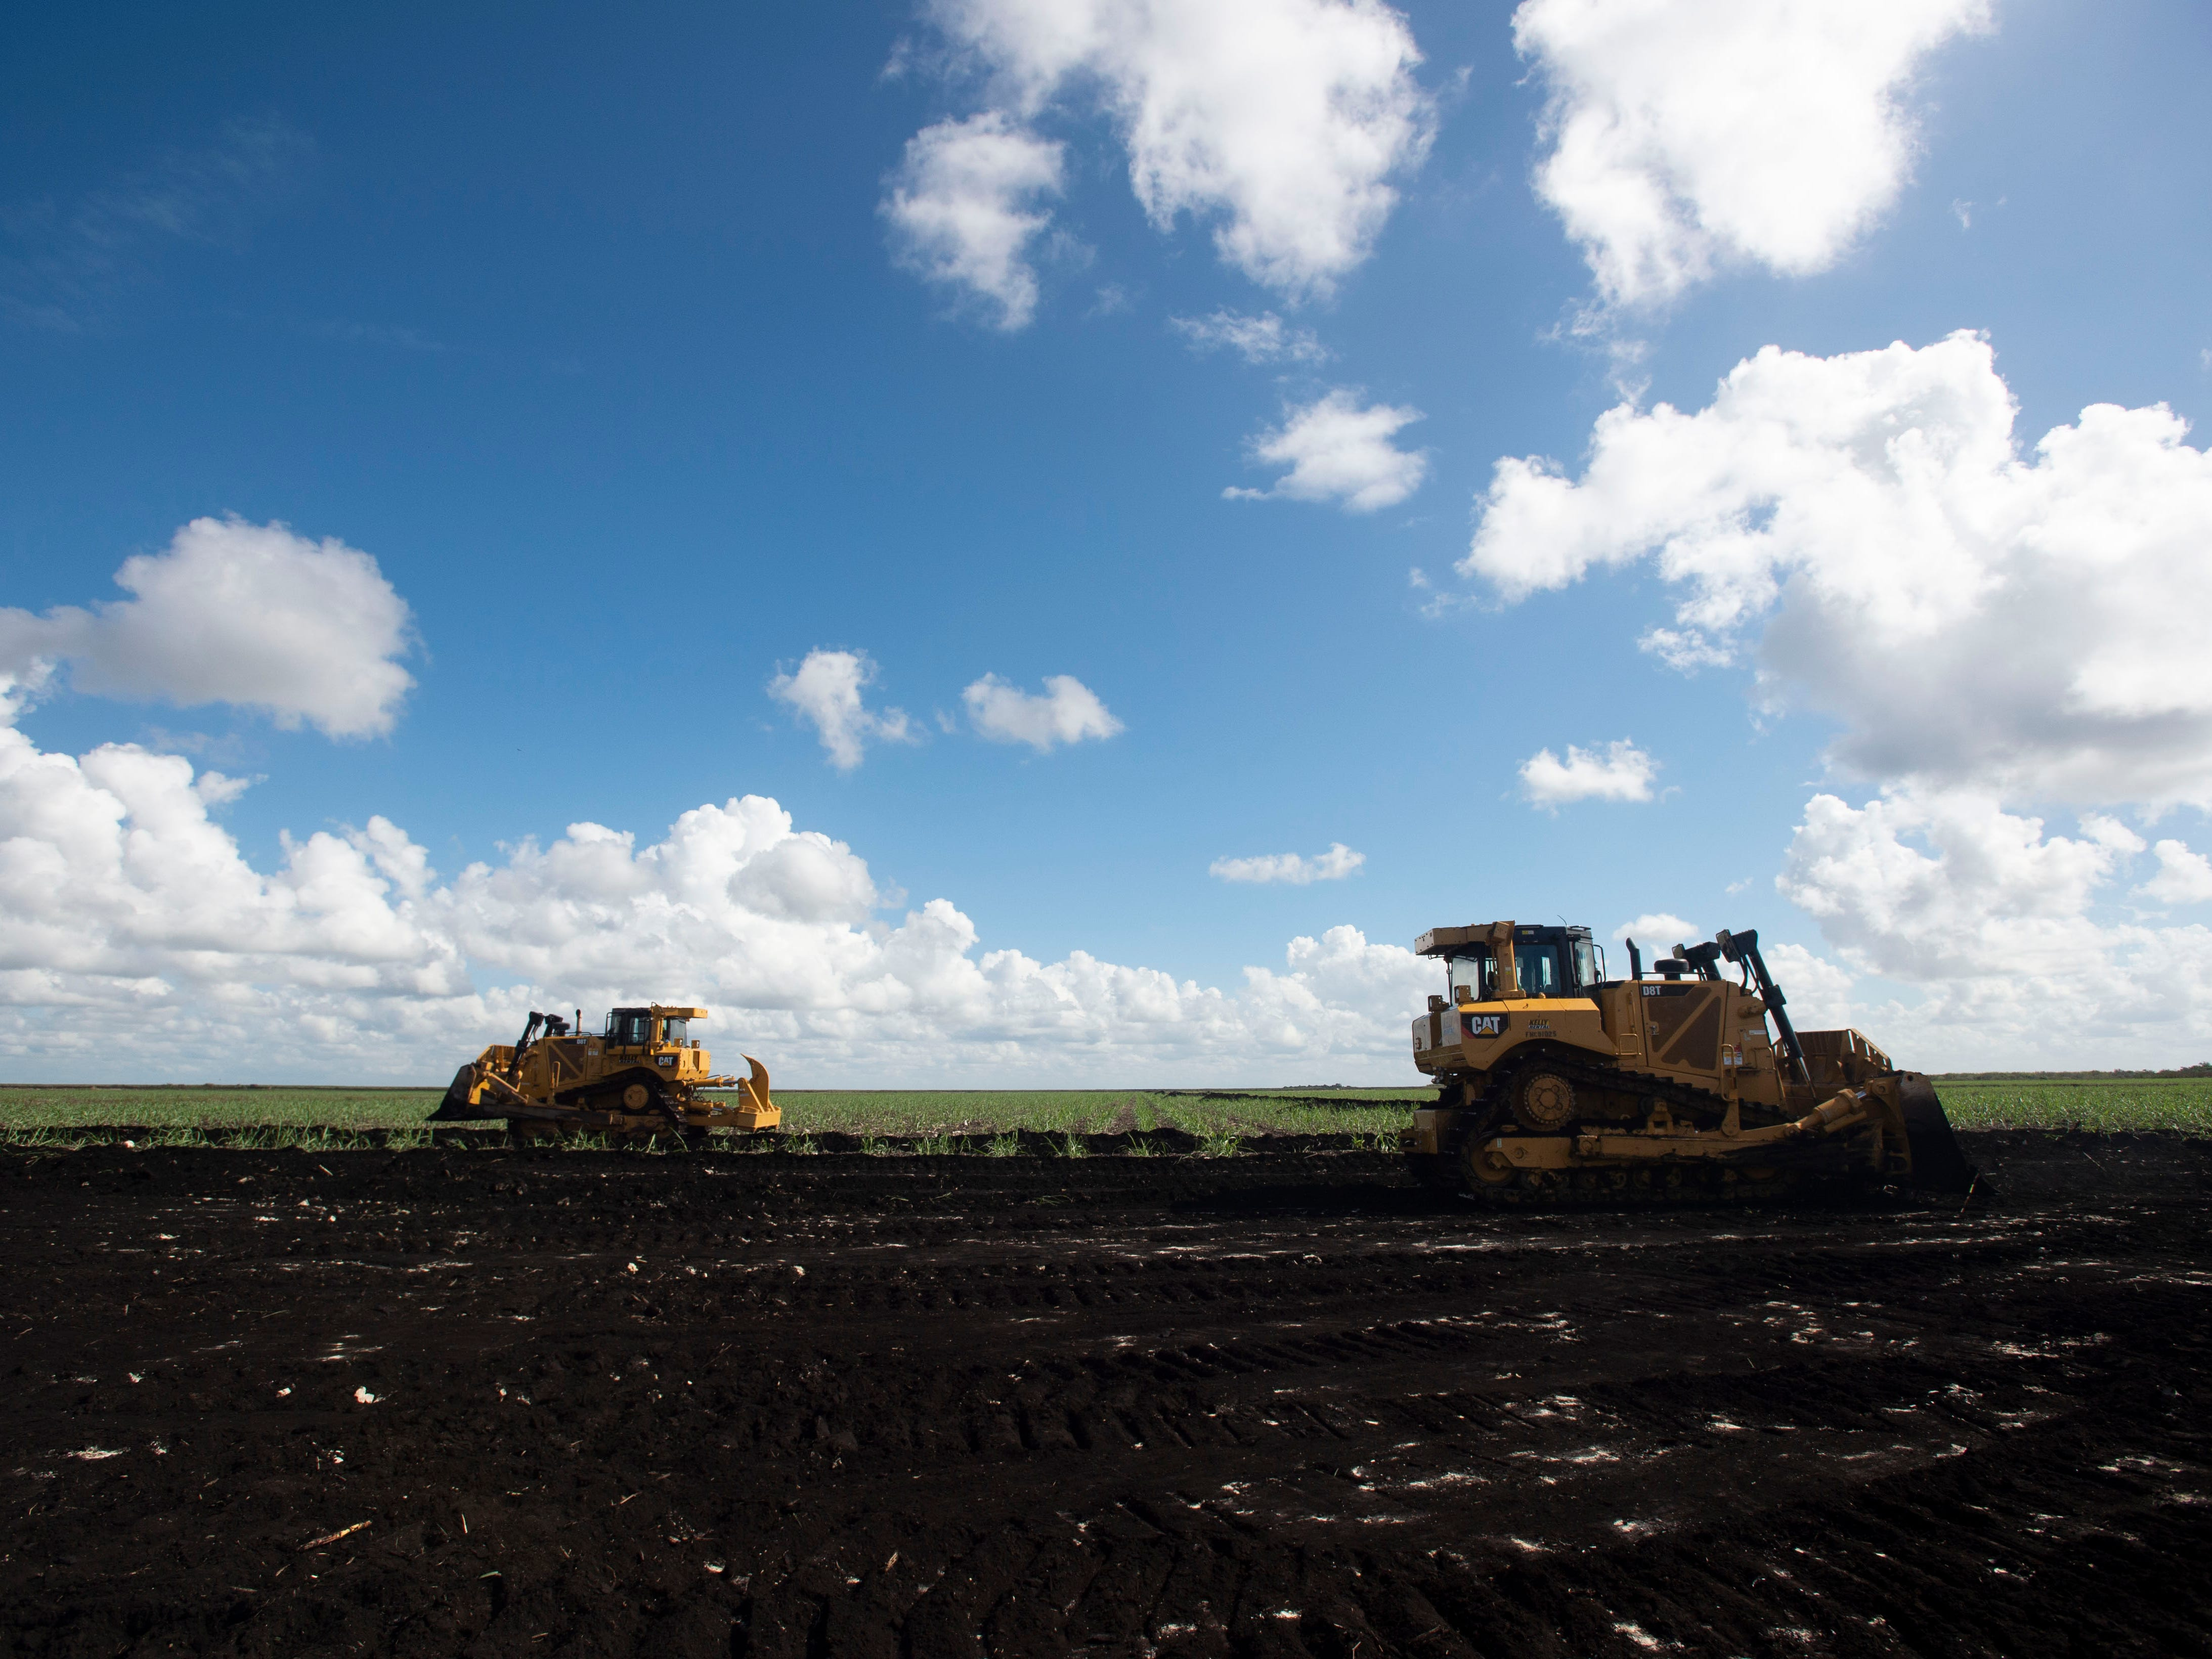 Heavy machinery bulldozes sugarcane fields on a 560-acre tract of land set to become the EAA reservoir, seen Wednesday, Nov. 14, 2018 in western Palm Beach County. Congress and President Donald Trump authorized the reservoir project in October by including it in America's Water Infrastructure Act of 2018, a list of all the water projects for the Army Corps of Engineers to do throughout the country.